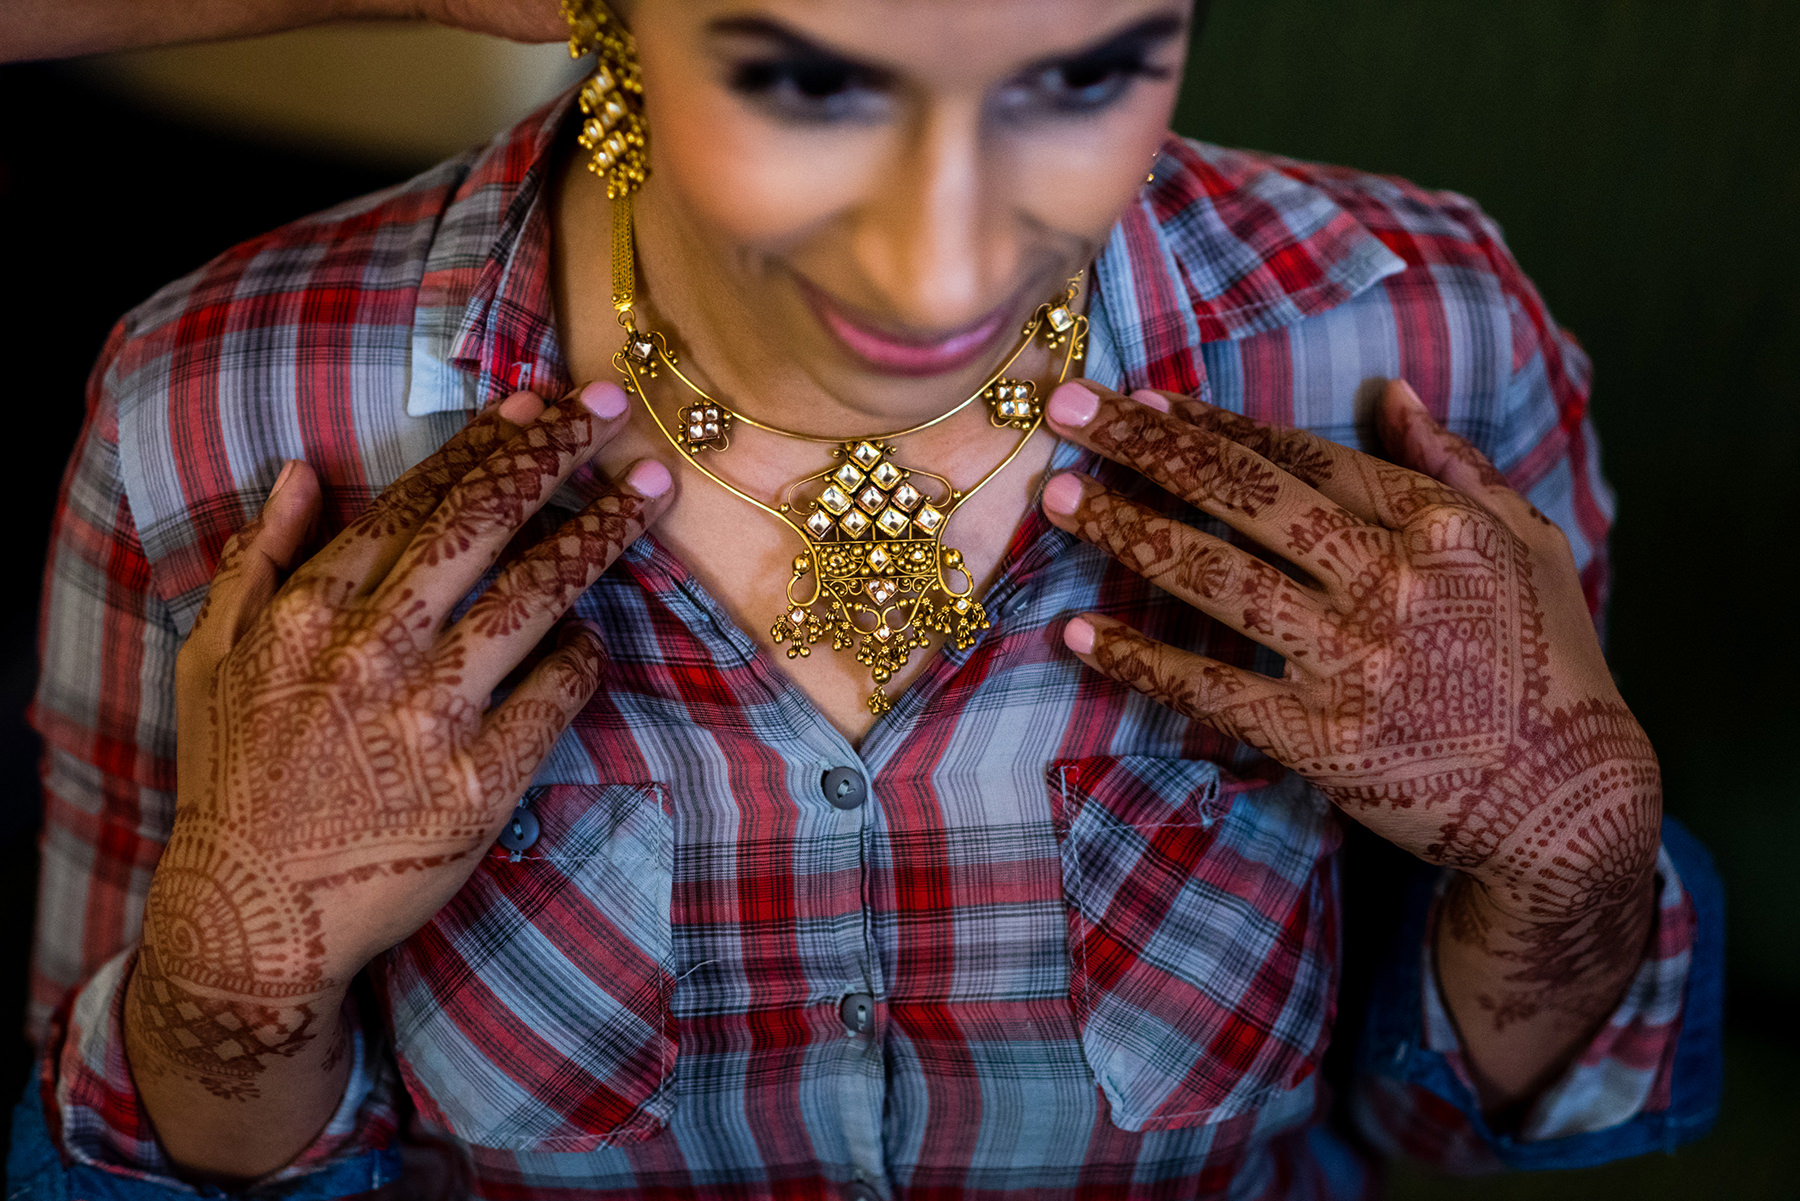 indian wedding bride putting on jewelry